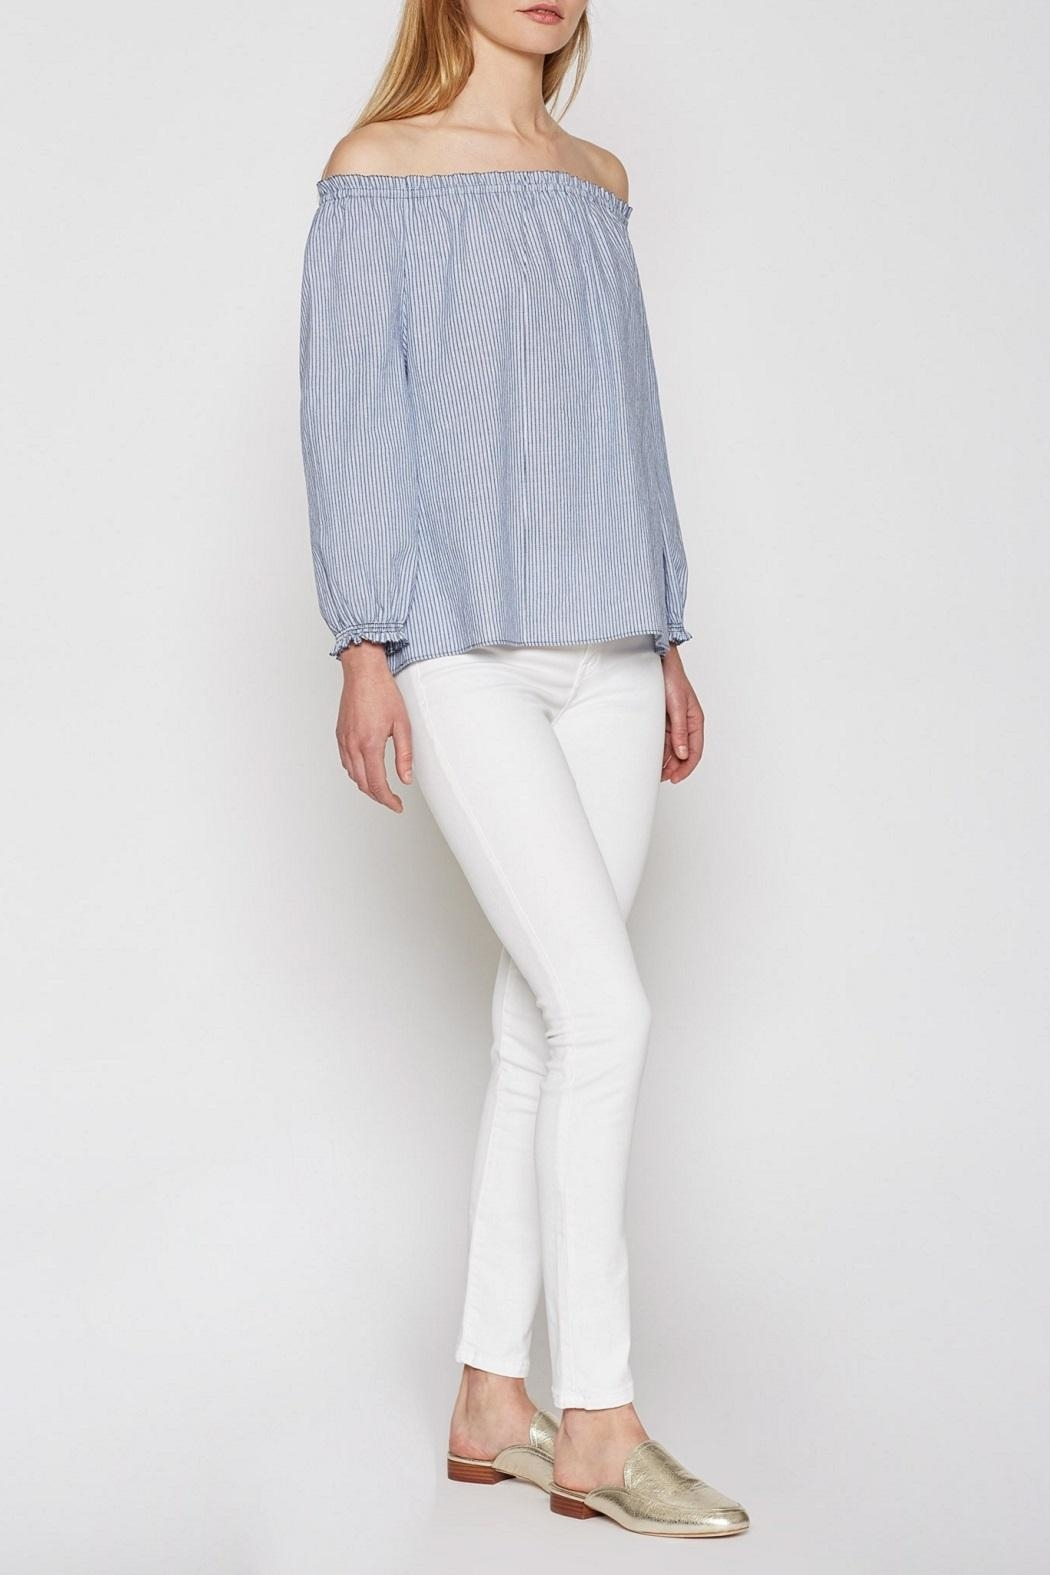 Joie Striped Bamboo Top - Front Full Image